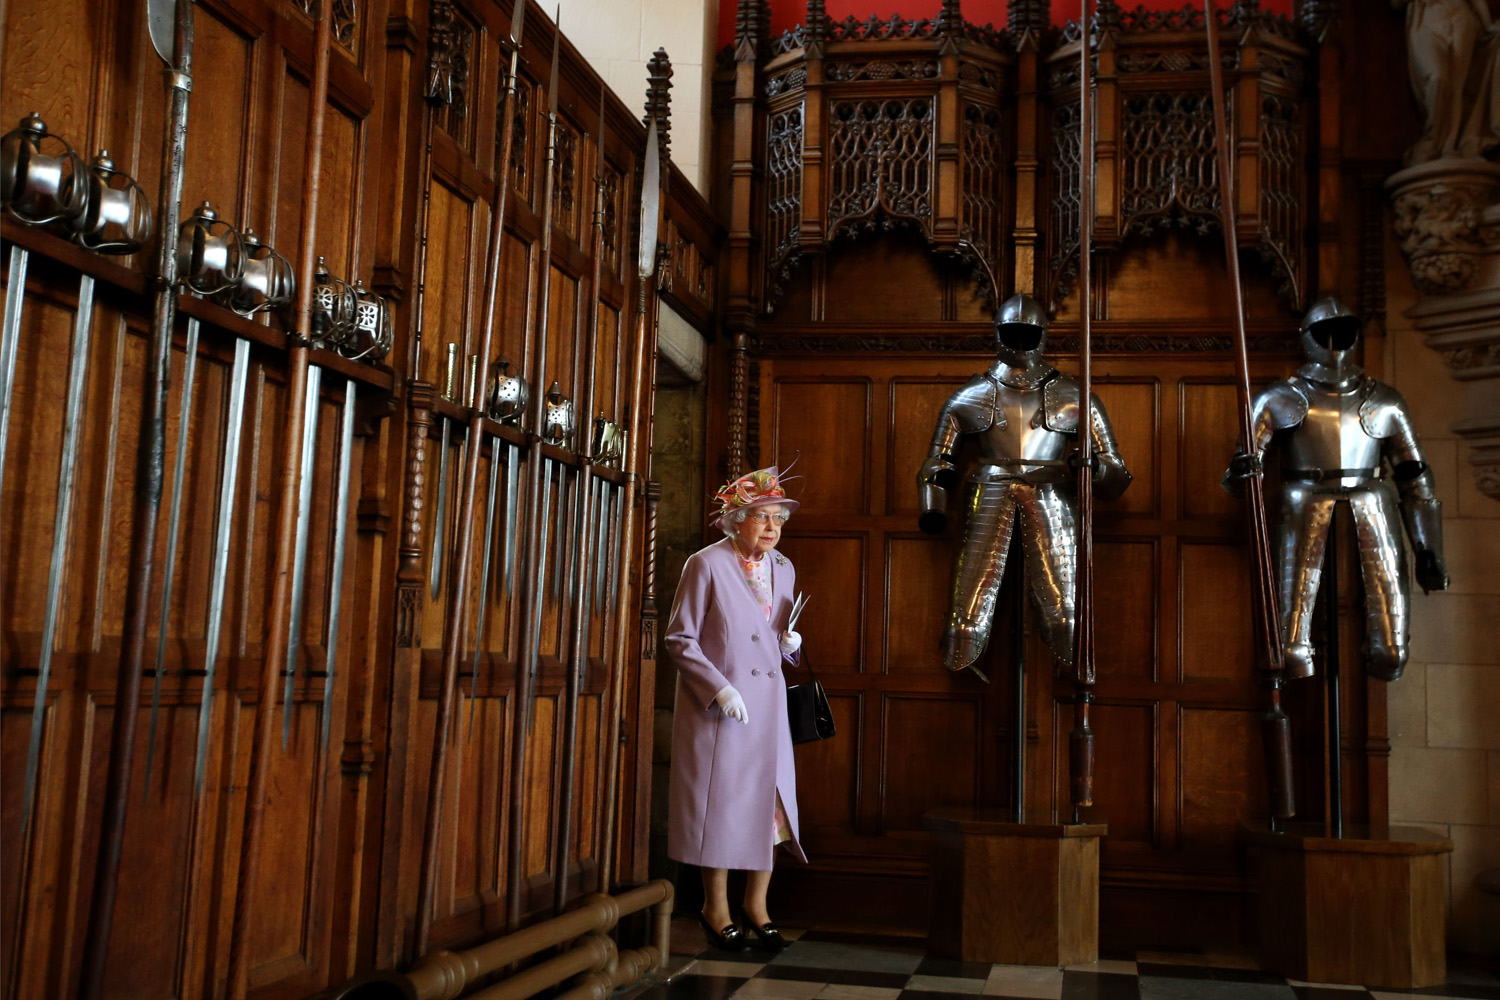 Jul. 3, 2014. Queen Elizabeth II enters the Great Hall at Edinburgh Castle to meet those associated with the Memorial after attending a commemorative service for the Scottish National War Memorial at Edinburgh Castle in Edinburgh, Scotland, United Kingdom.